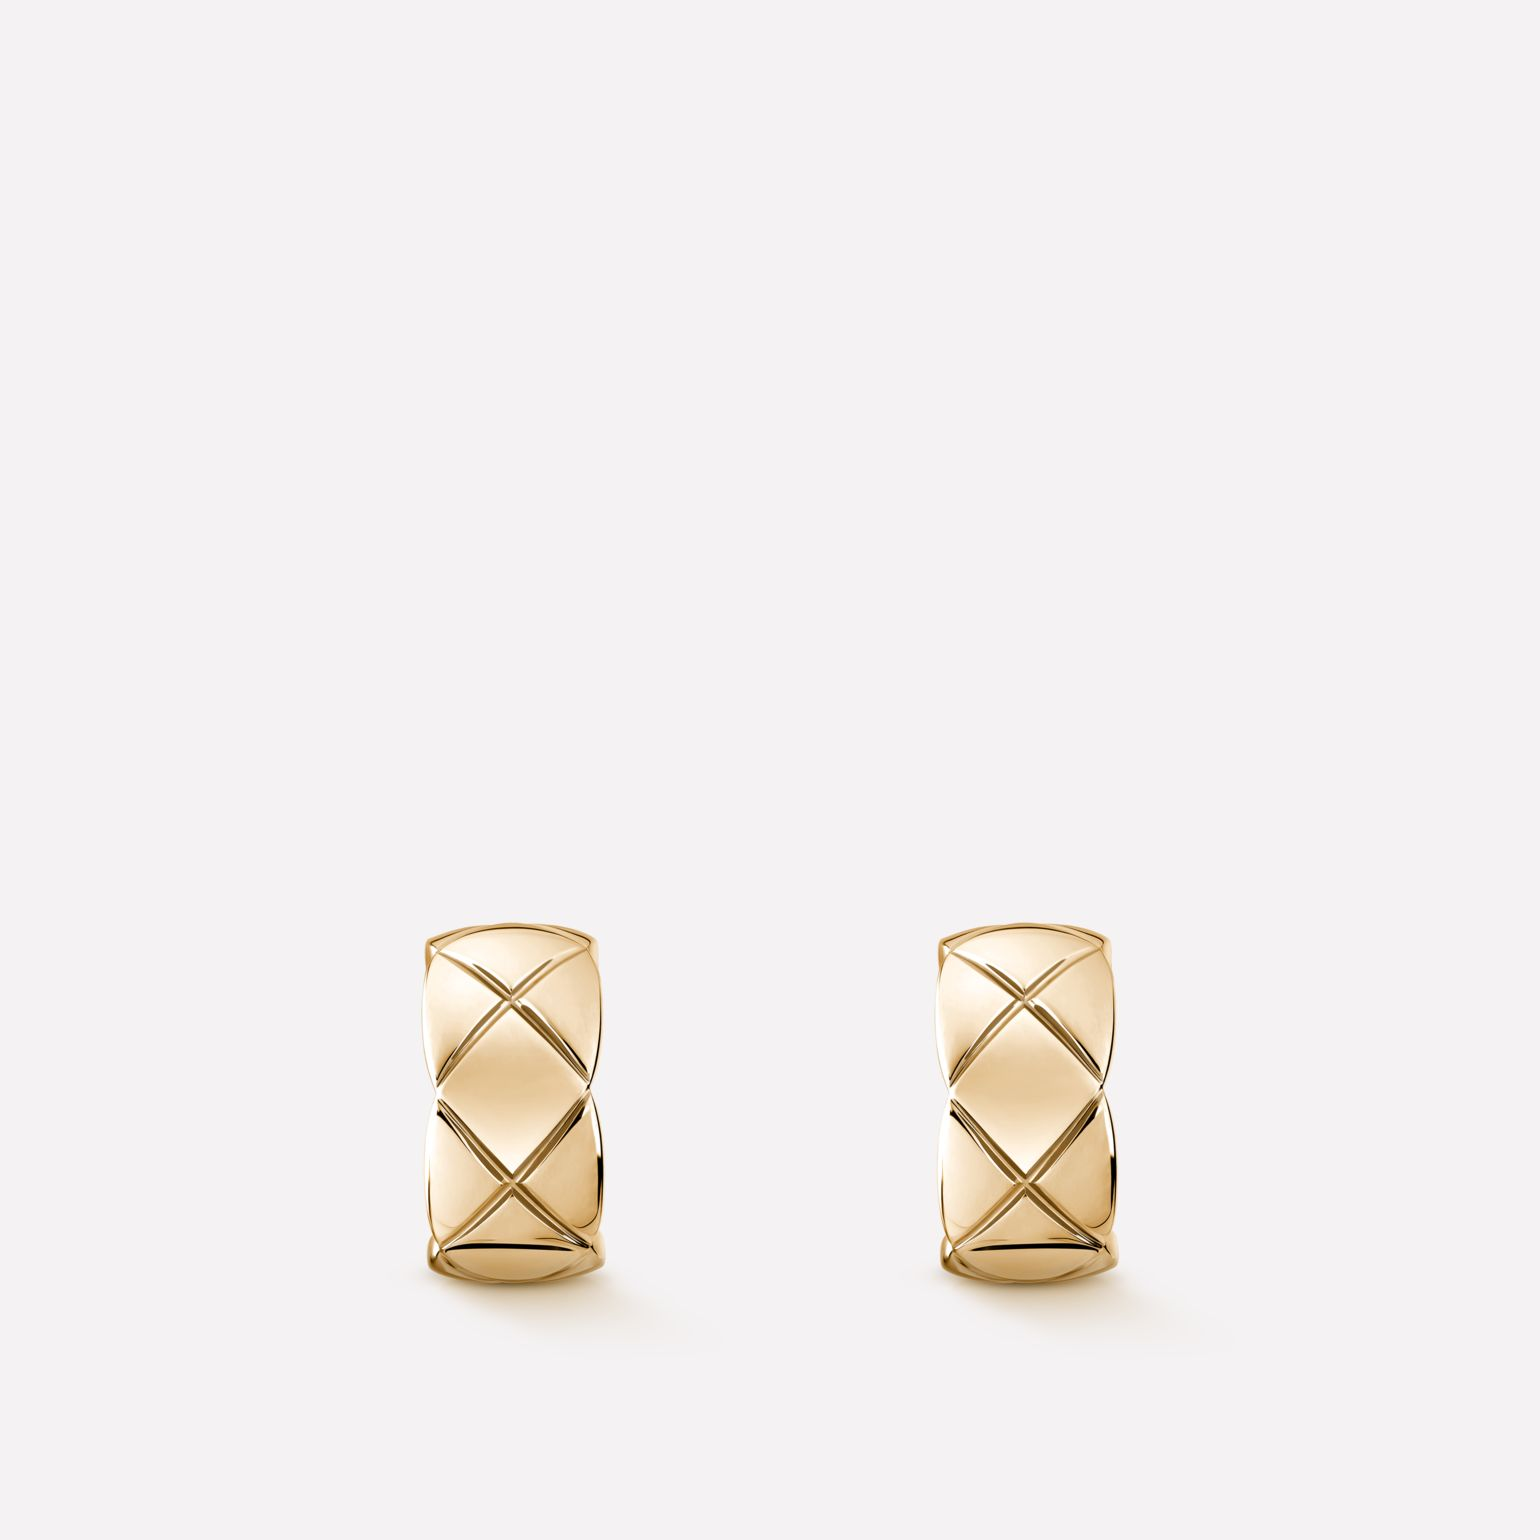 Coco Crush earrings Quilted motif, 18K BEIGE GOLD